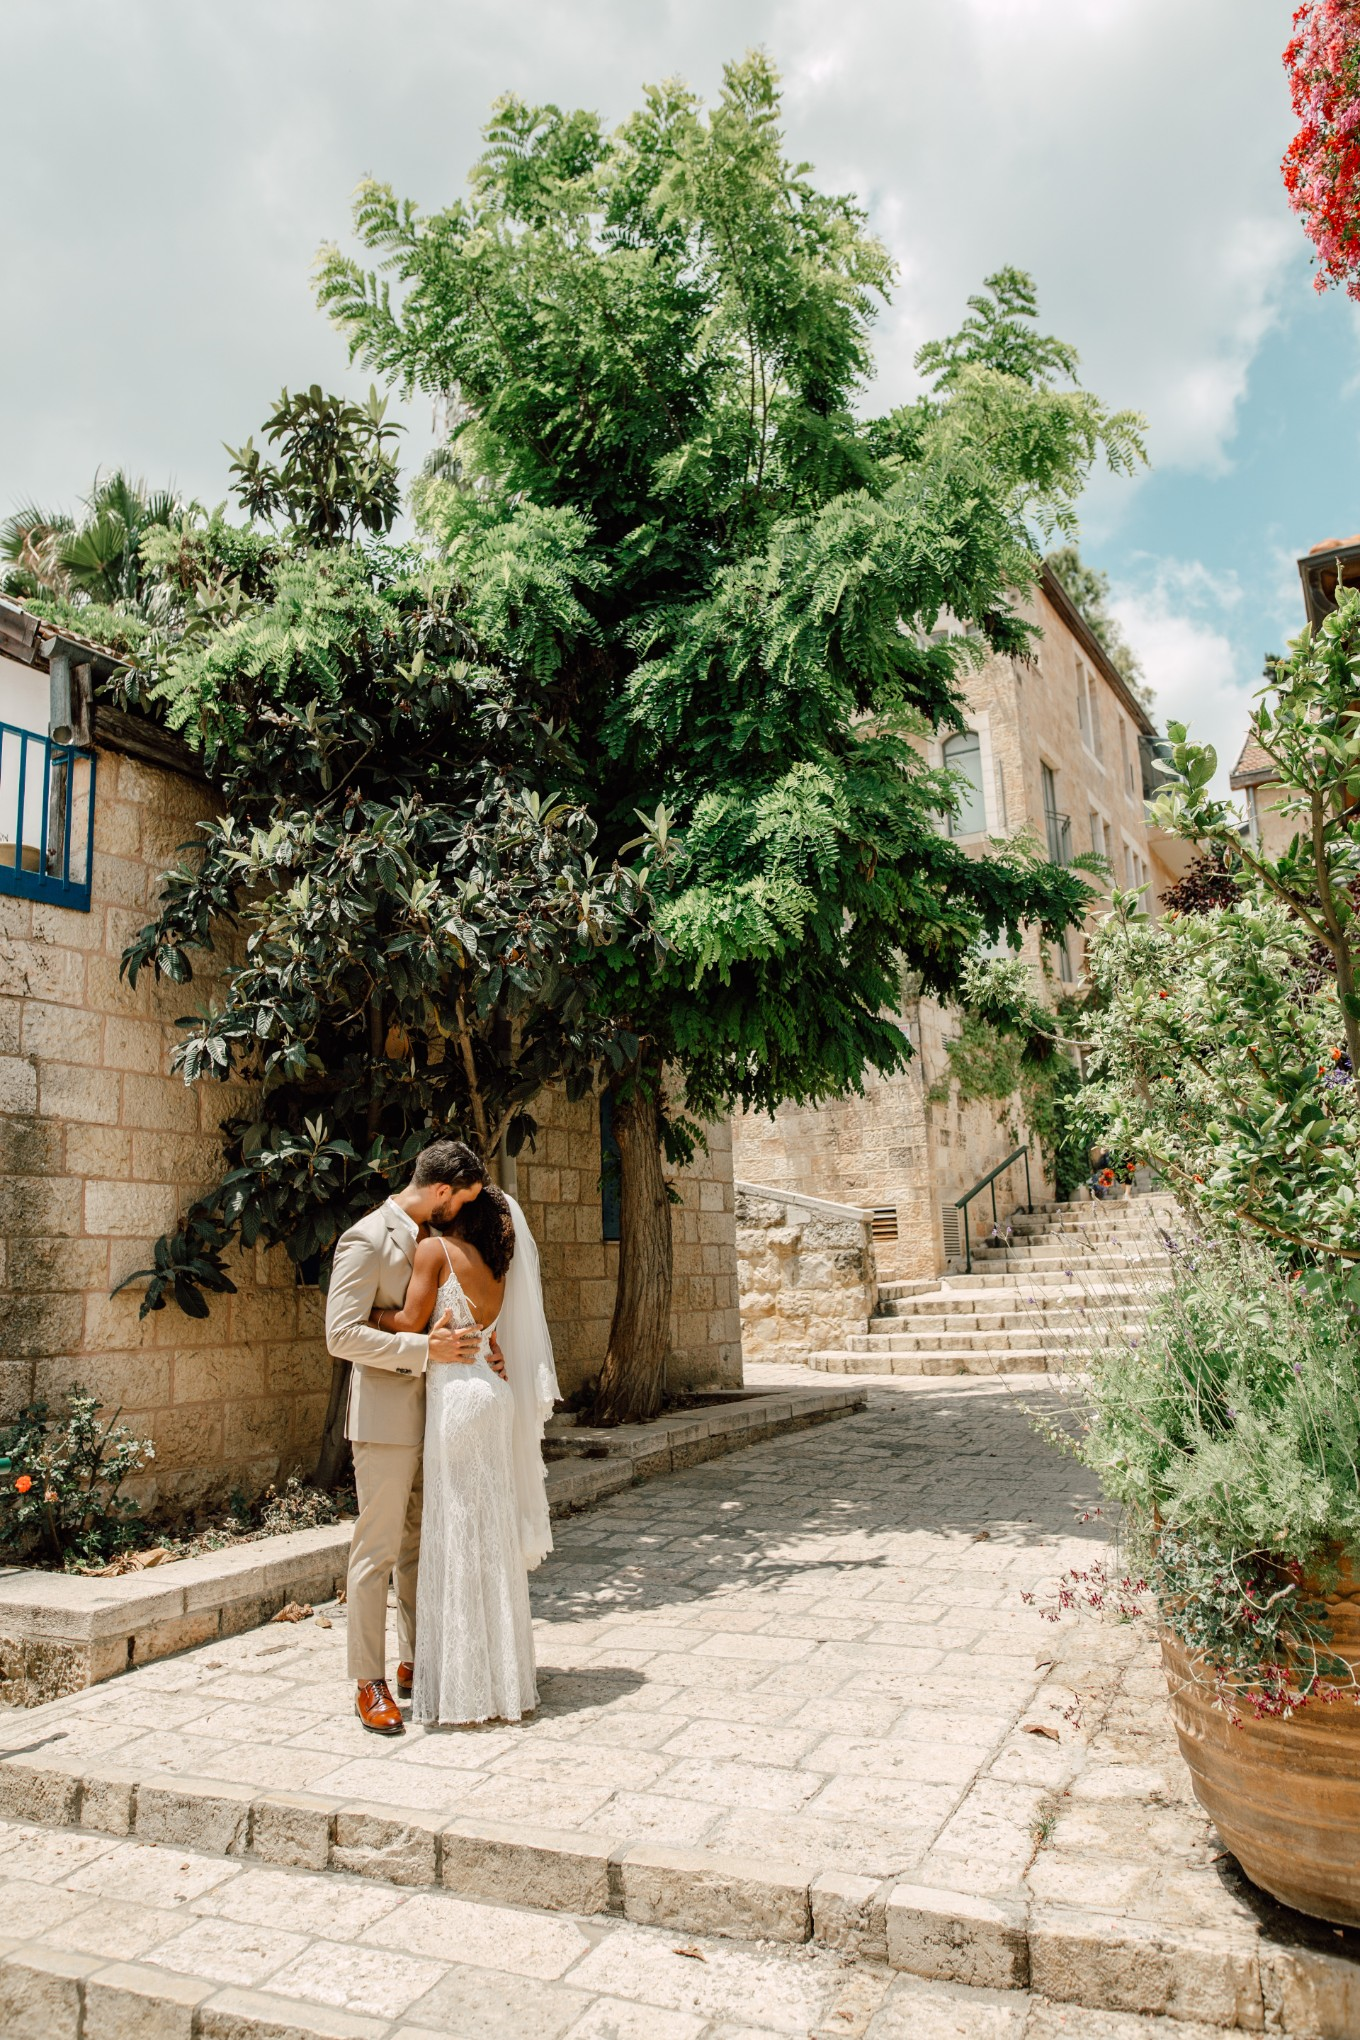 Jerusalem-Pia-Anna-Christian-Wedding-Photography-AD-T-65.jpg